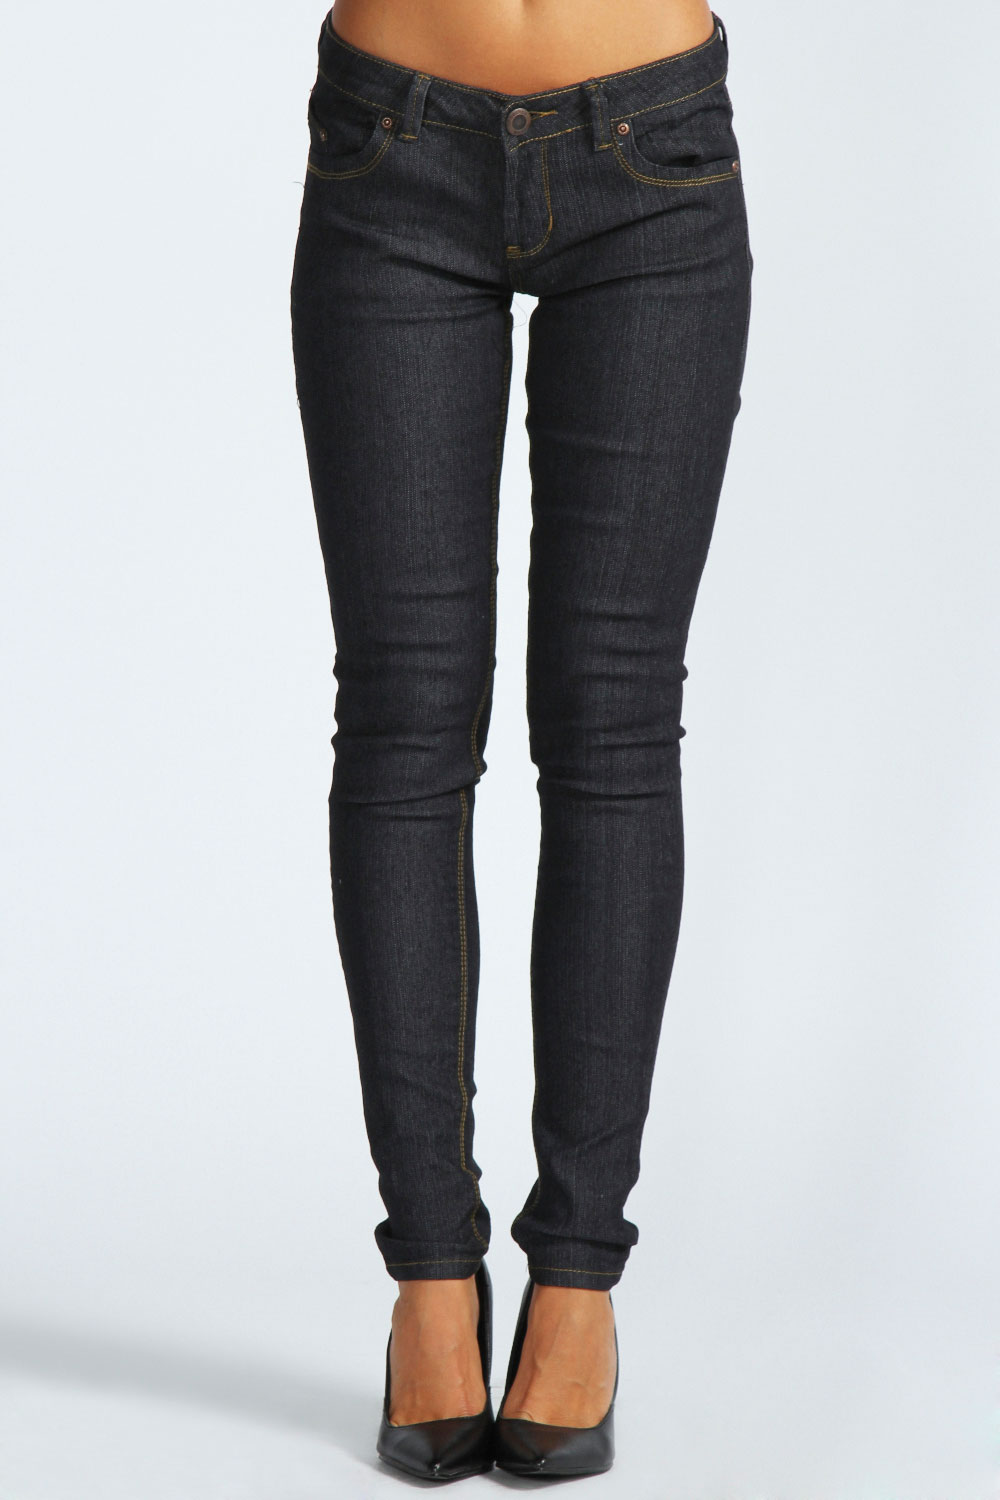 Boohoo-Womens-Ladies-Clara-Cotton-Blend-Wow-Super-Skinny-Jeans-In-Black